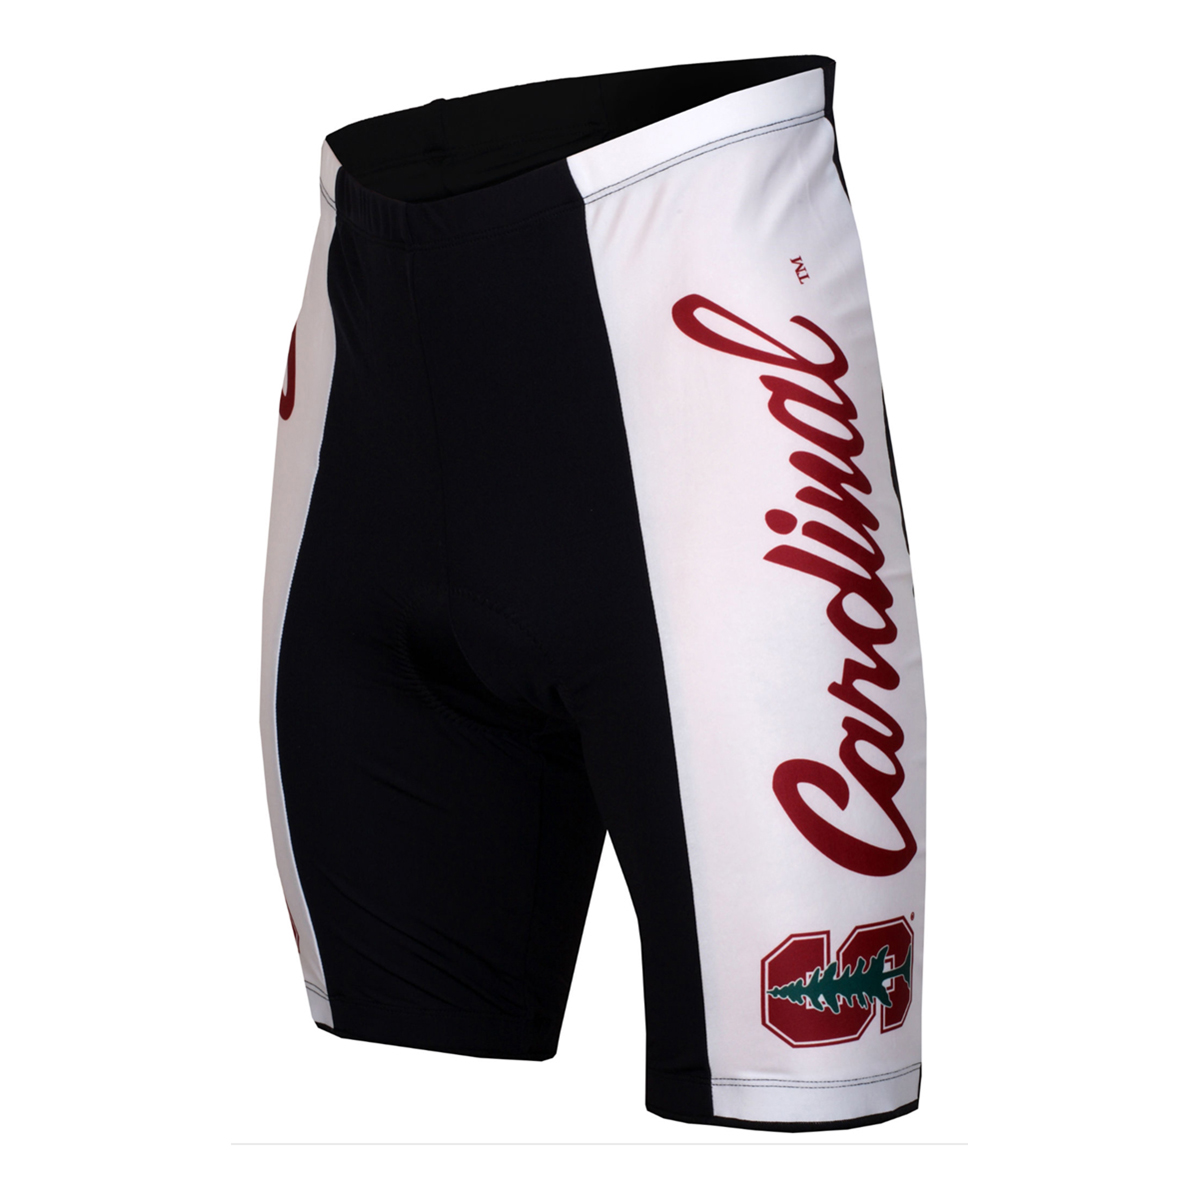 Adrenaline Promotions Standford University Cardinals Cycling Shorts